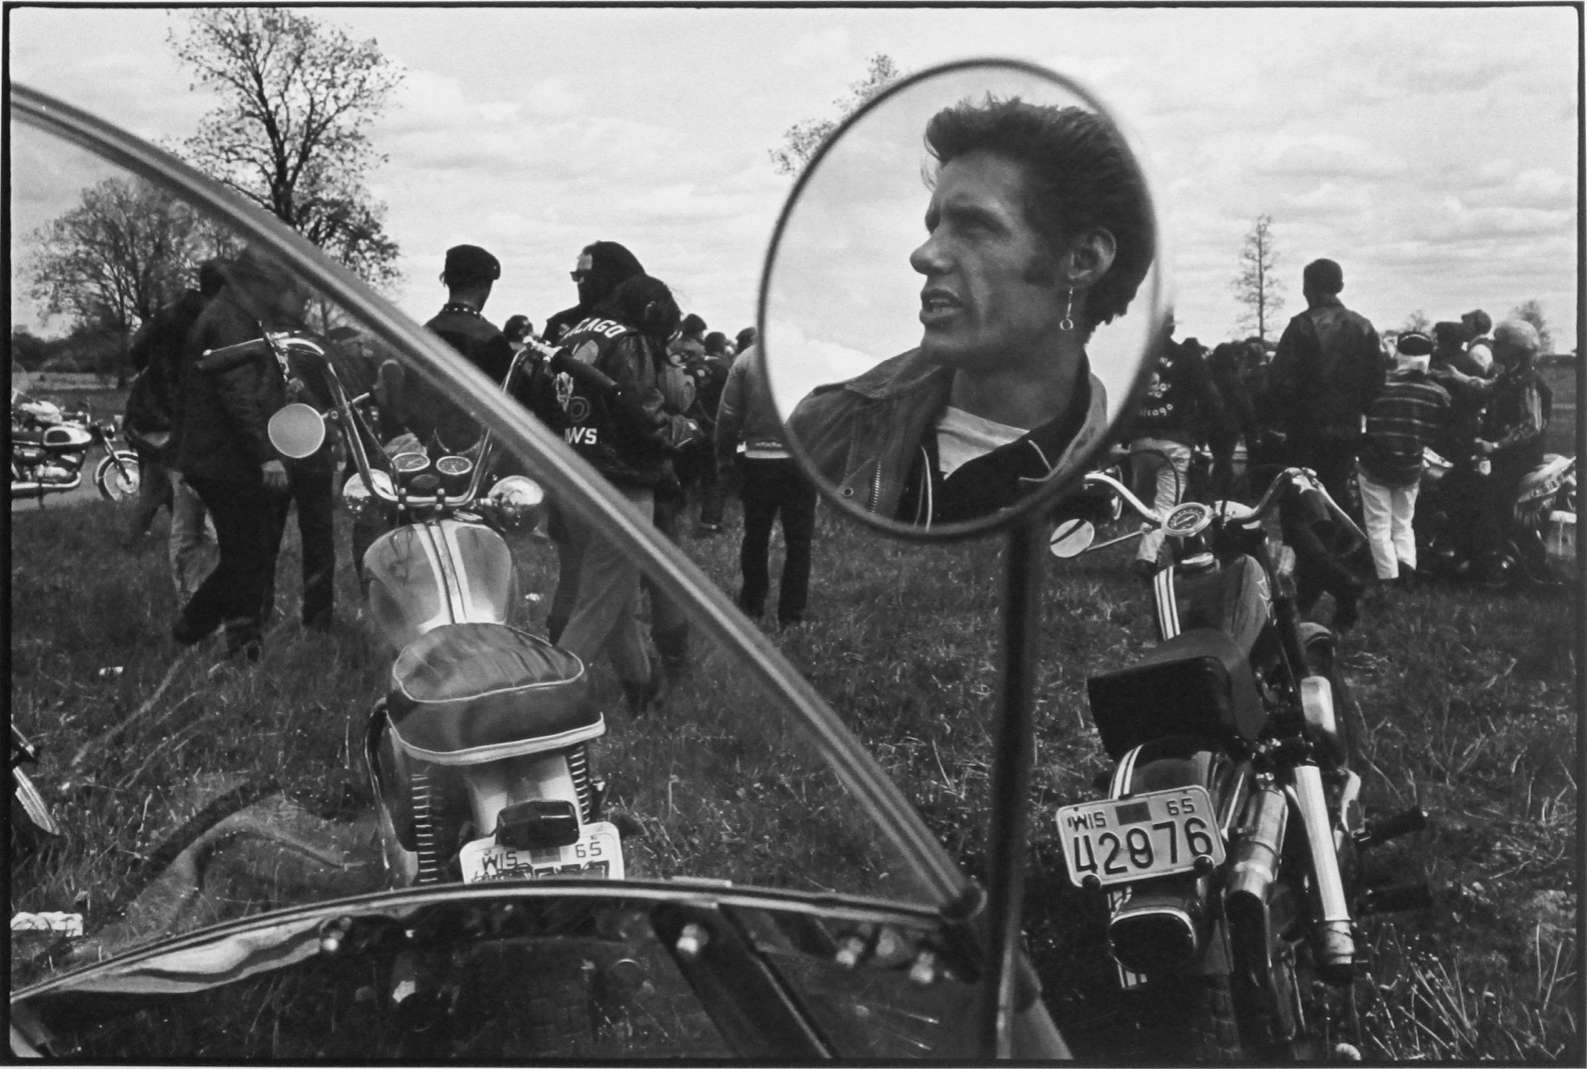 Cal, Elkhorn, Wisconsin, The Bikeriders Portfolio, 1966